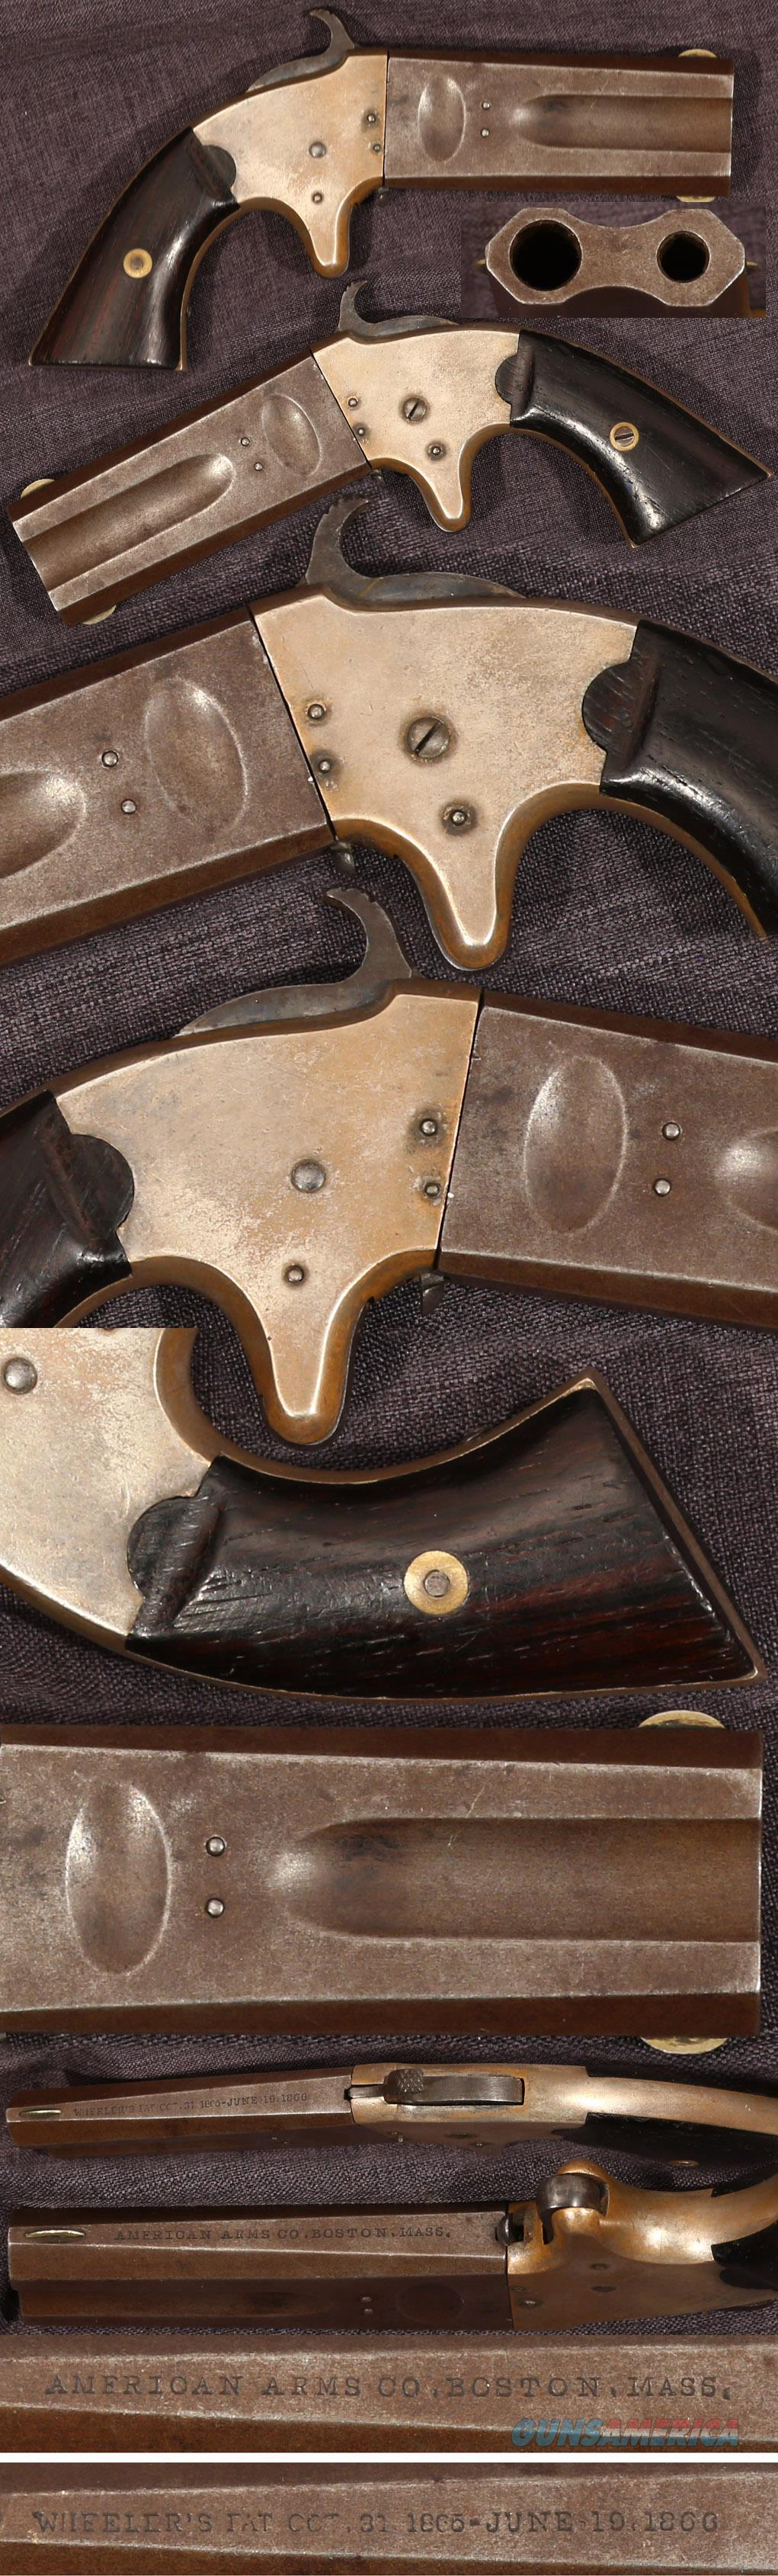 American Arms Co over-under 22/32 derringer  Guns > Pistols > Antique (Pre-1899) Pistols - Ctg. Misc.